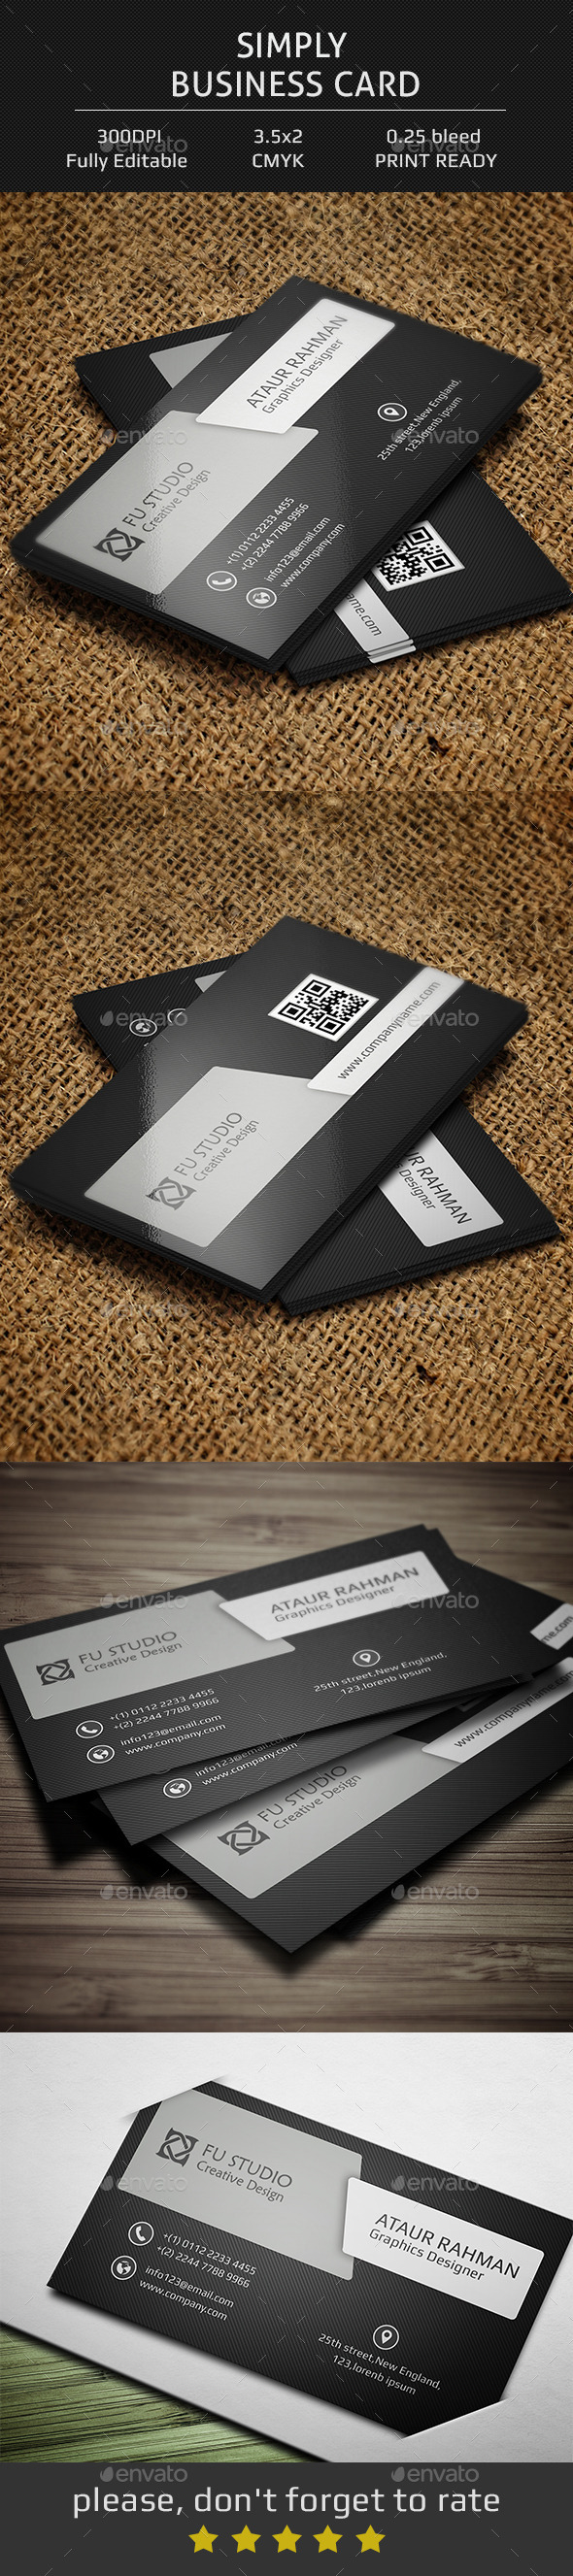 GraphicRiver Simply Business Card 11902214